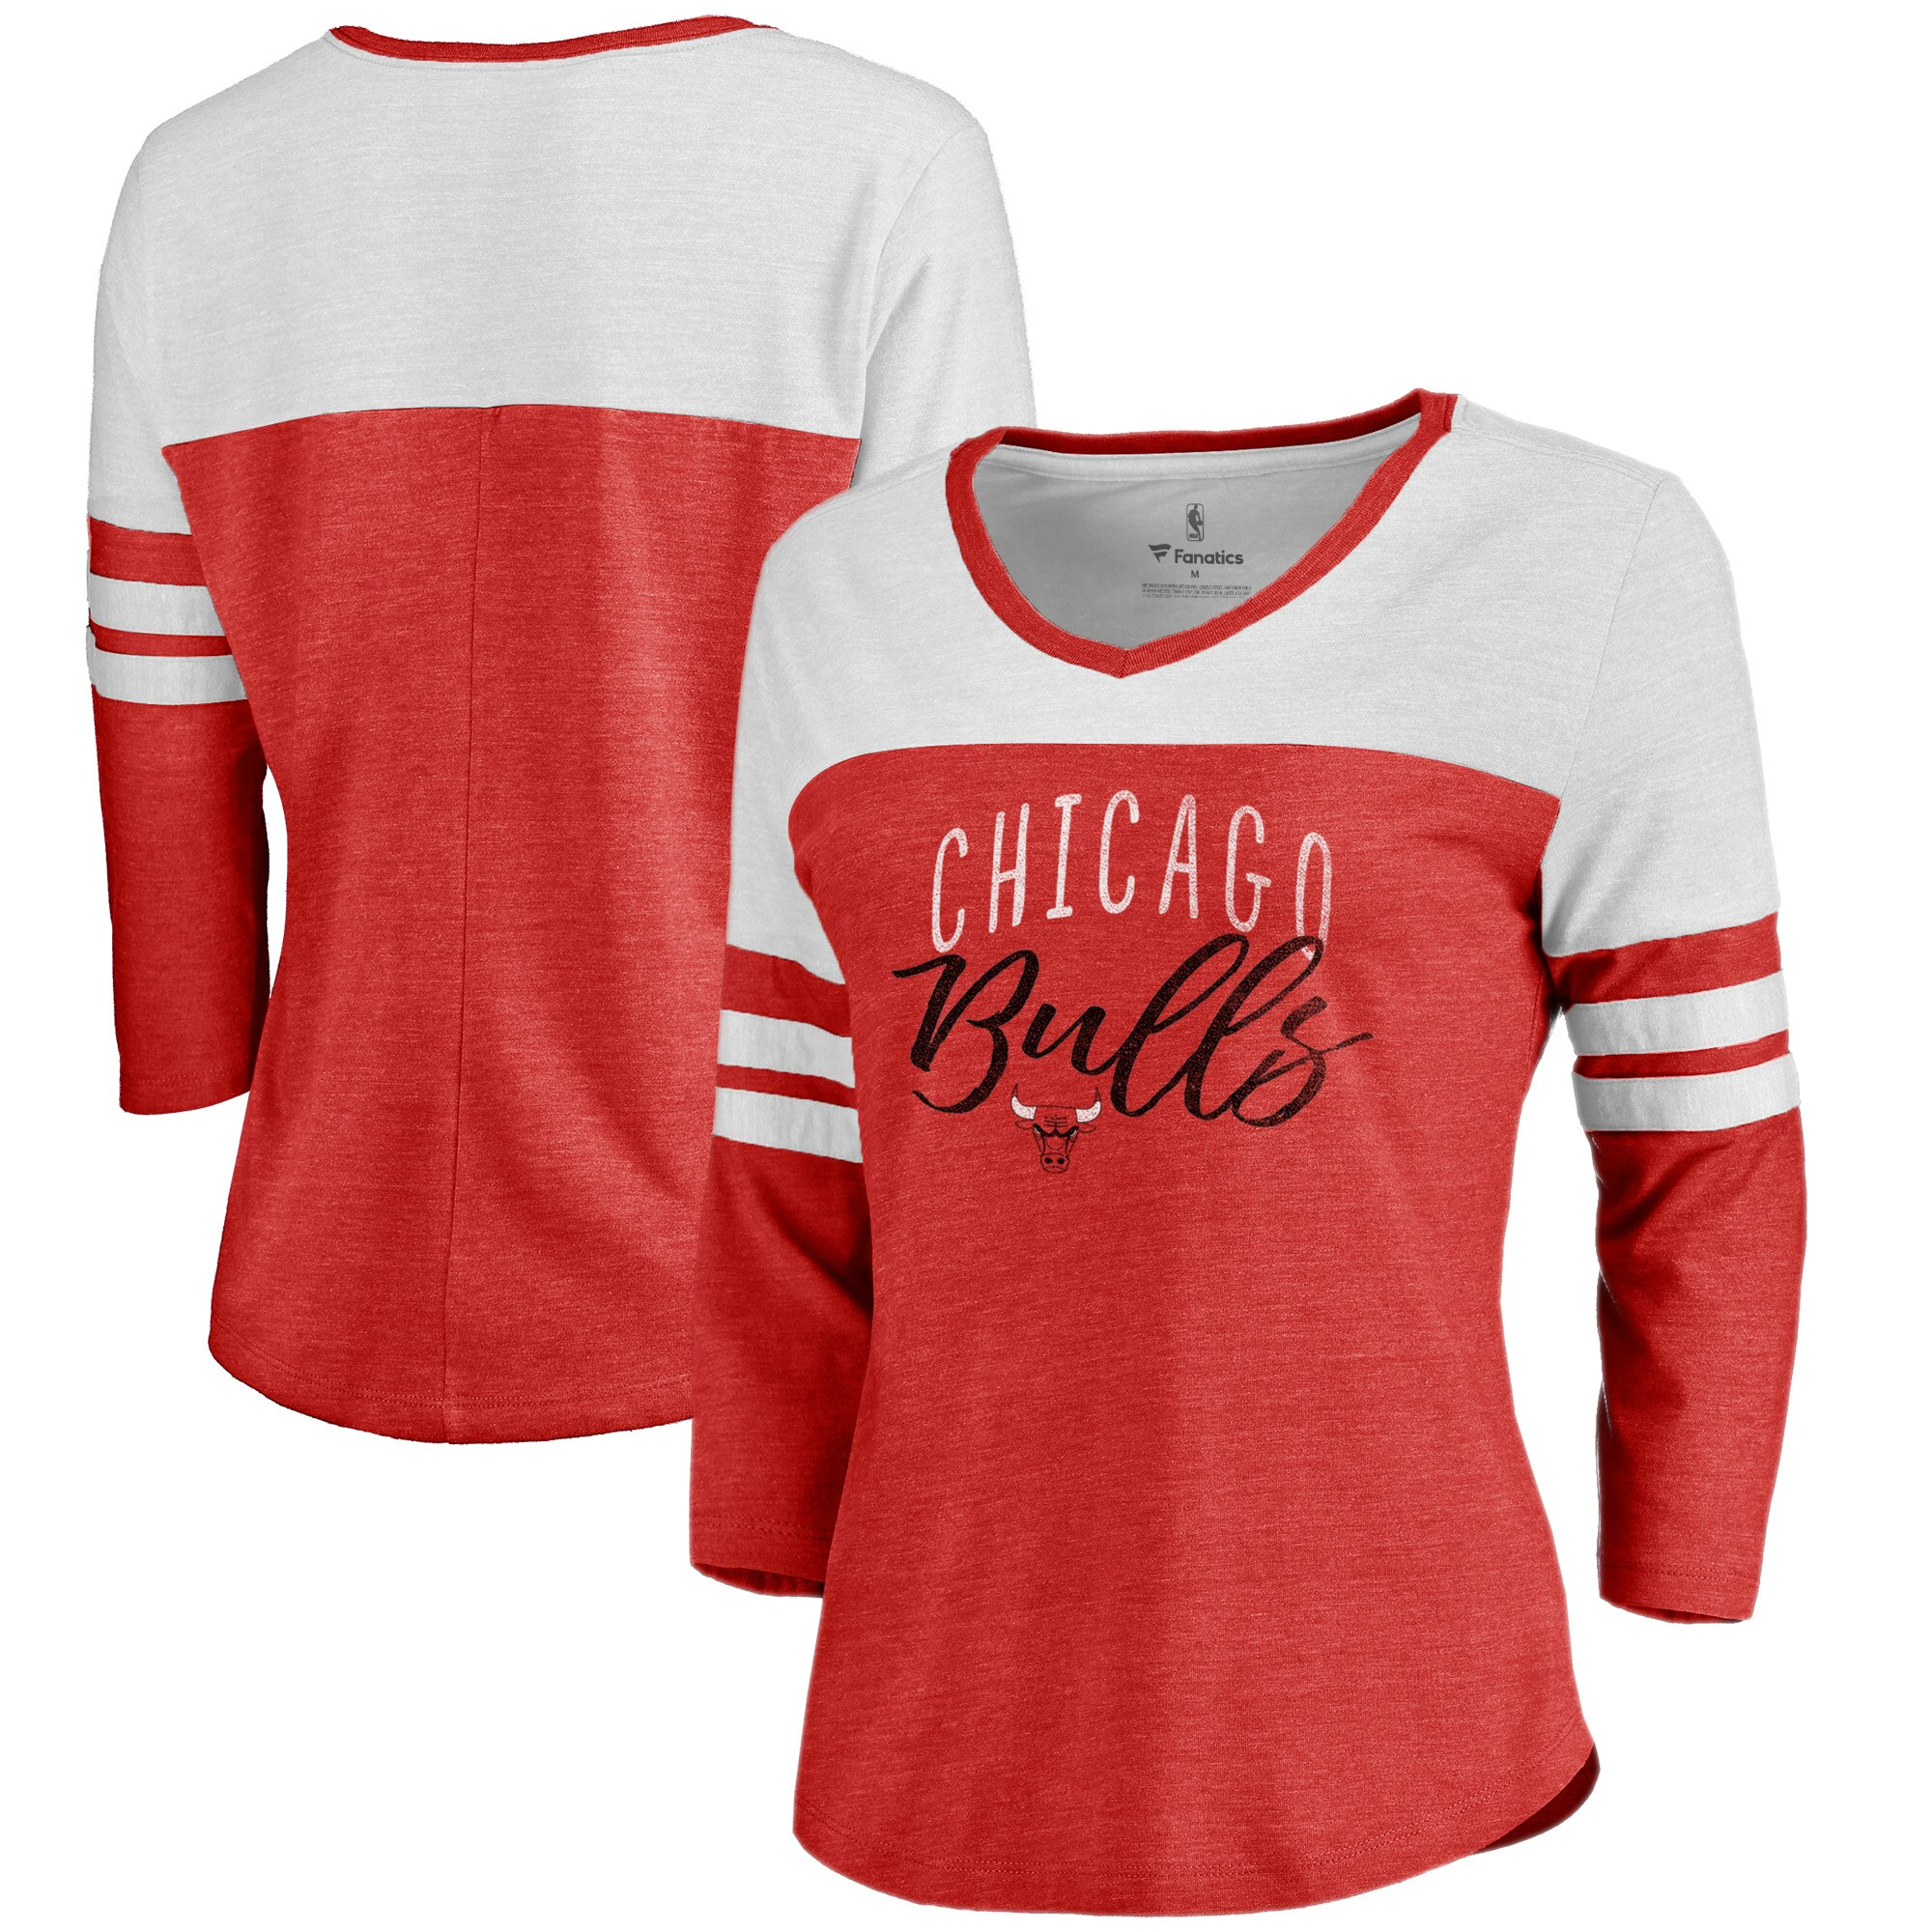 Chicago Bulls Fanatics Branded Women's Graceful 3/4-Sleeve Raglan T-Shirt - Heathered Red